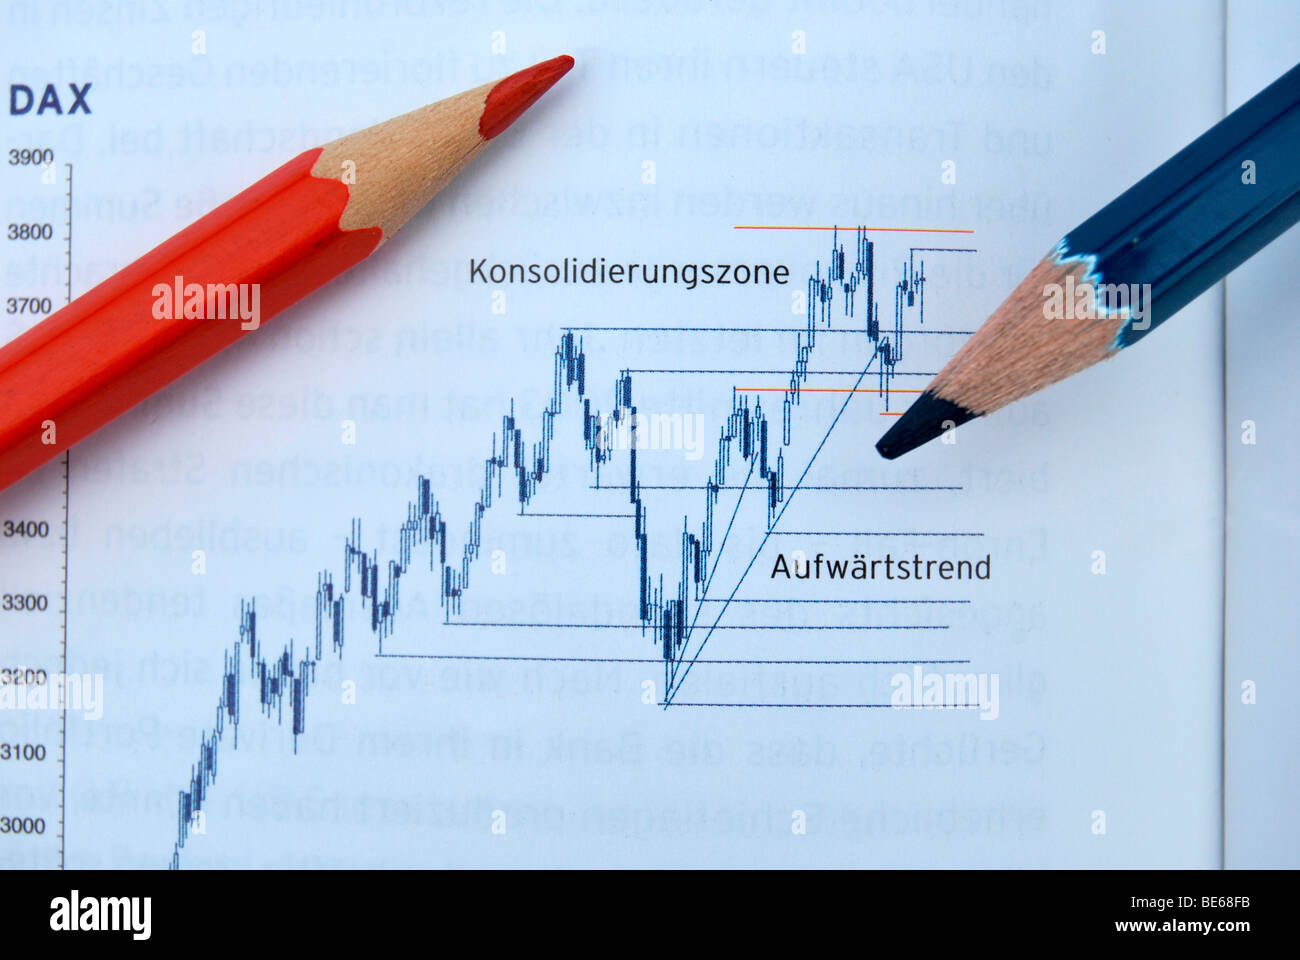 Economic crisis and boom, chart, German stock index, DAX with pens - Stock Image